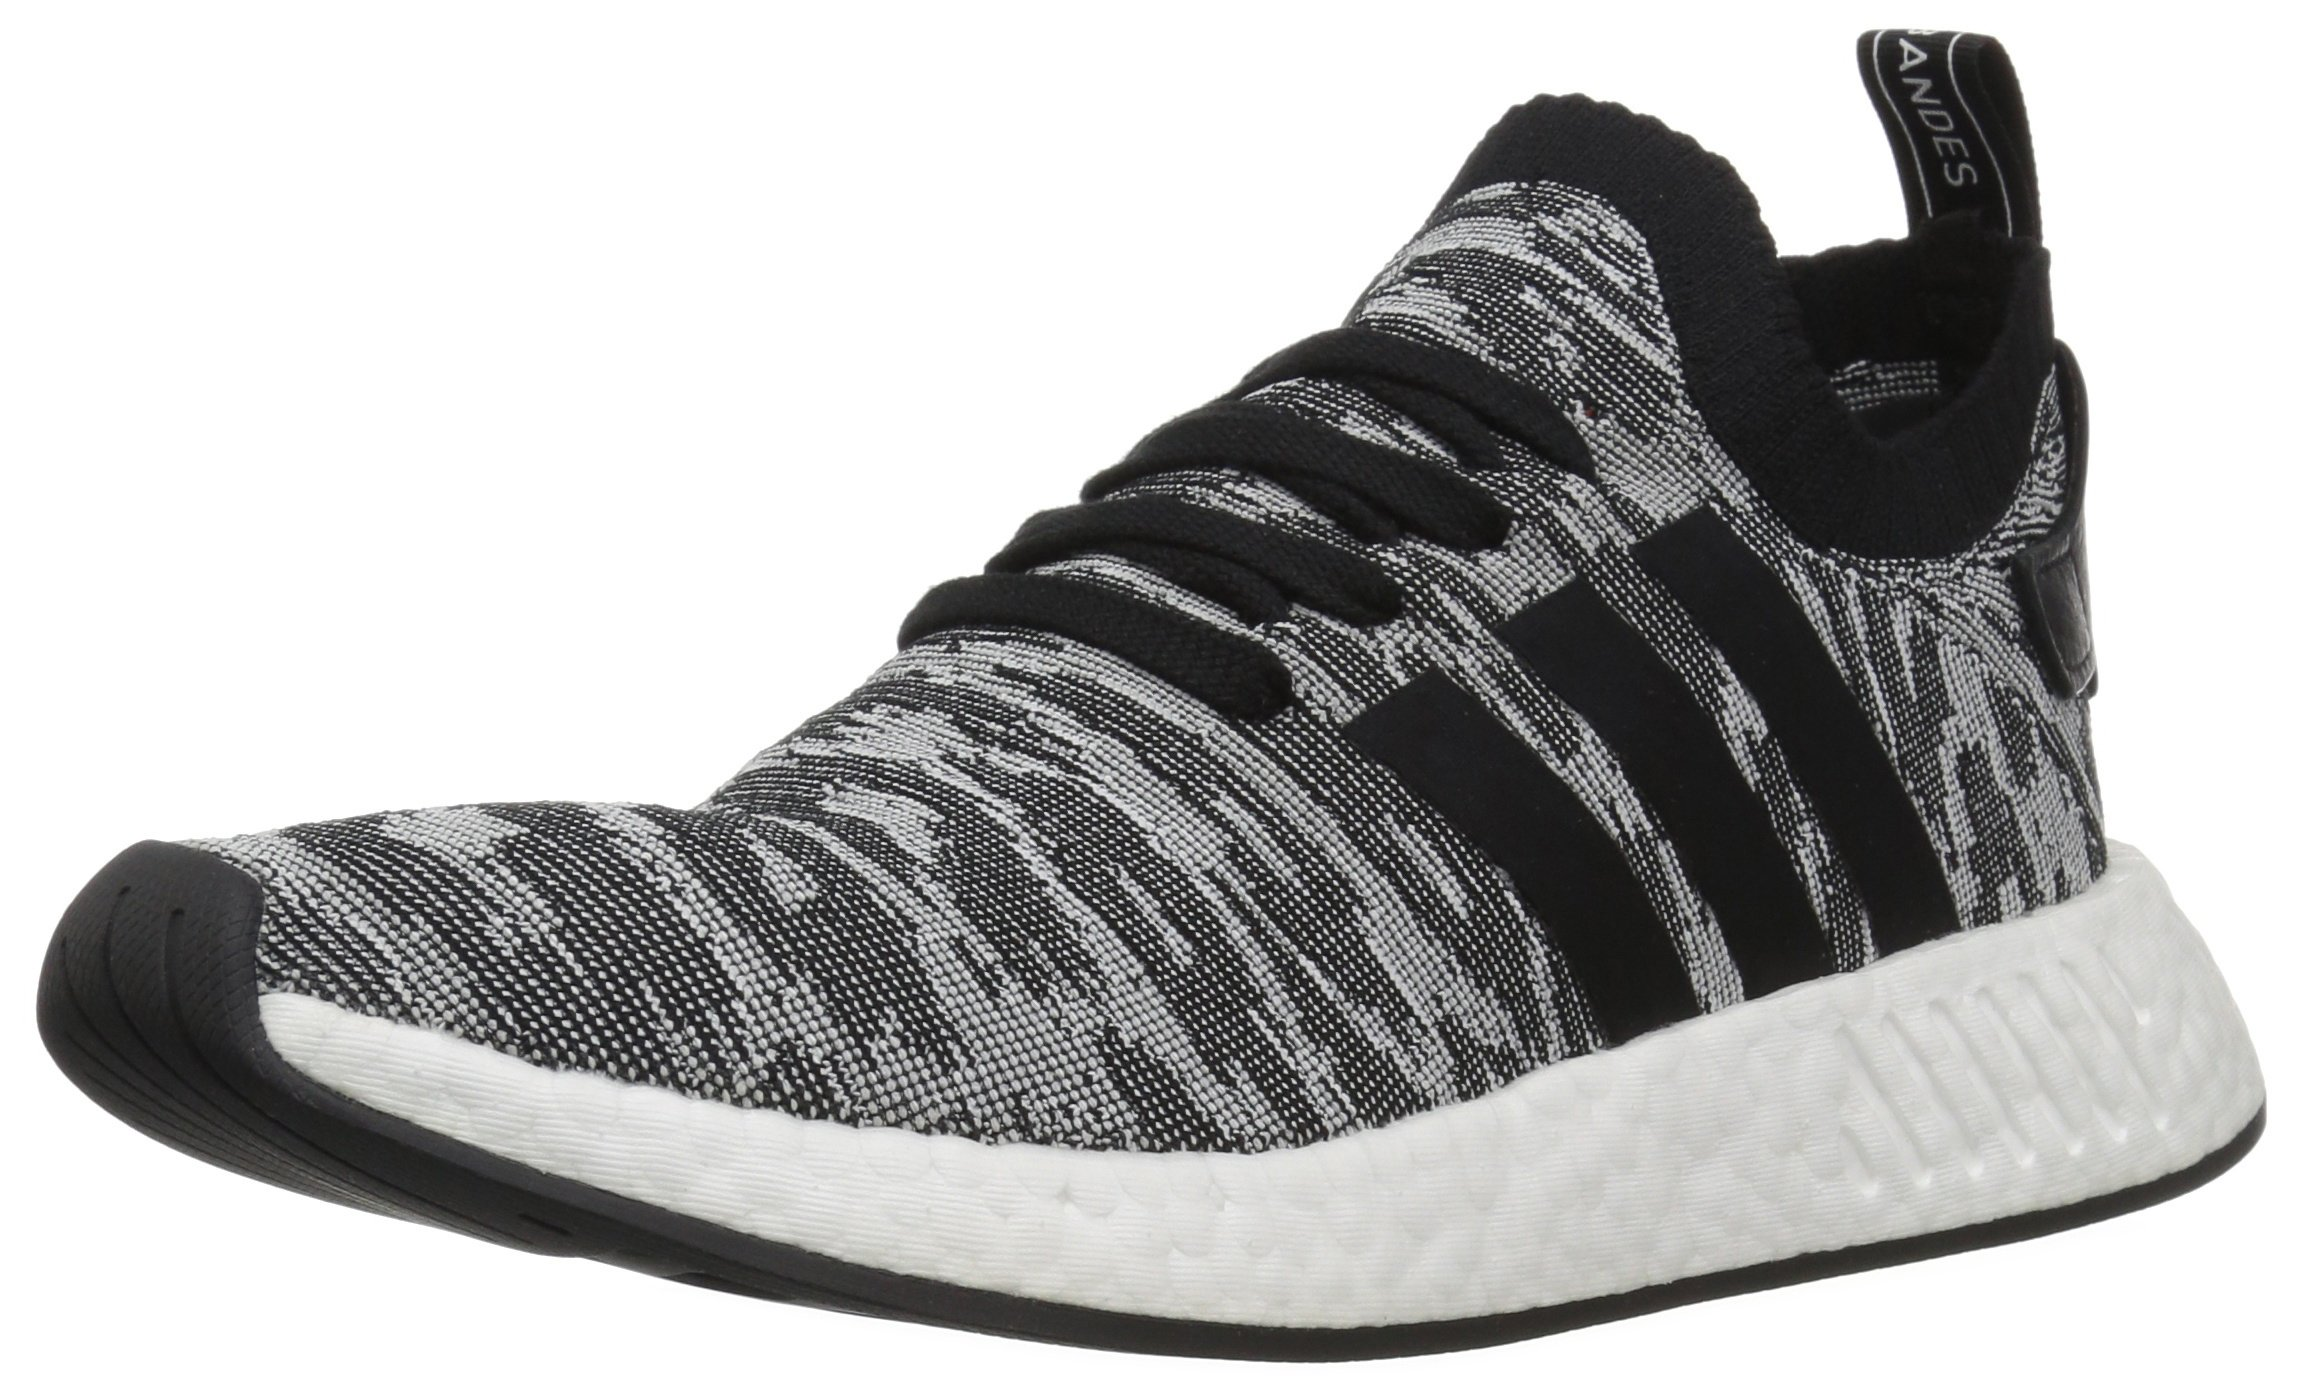 detailed look d98a6 c7f9d adidas Originals Men's NMD_R2 PK Running Shoe Black/White, 10 M US